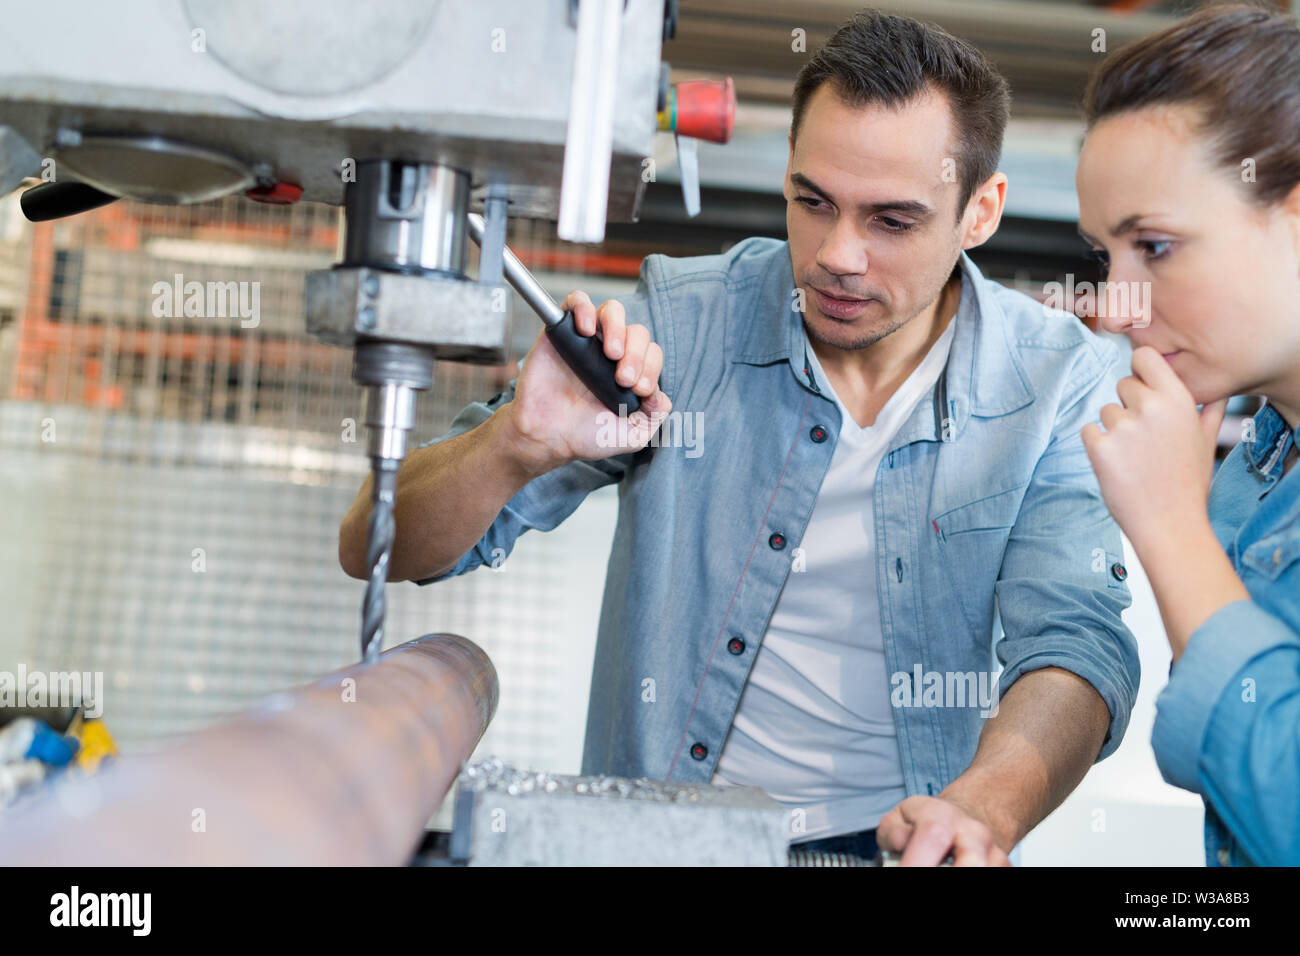 young technicians working on pillar drilling machine in workshop - Stock Image